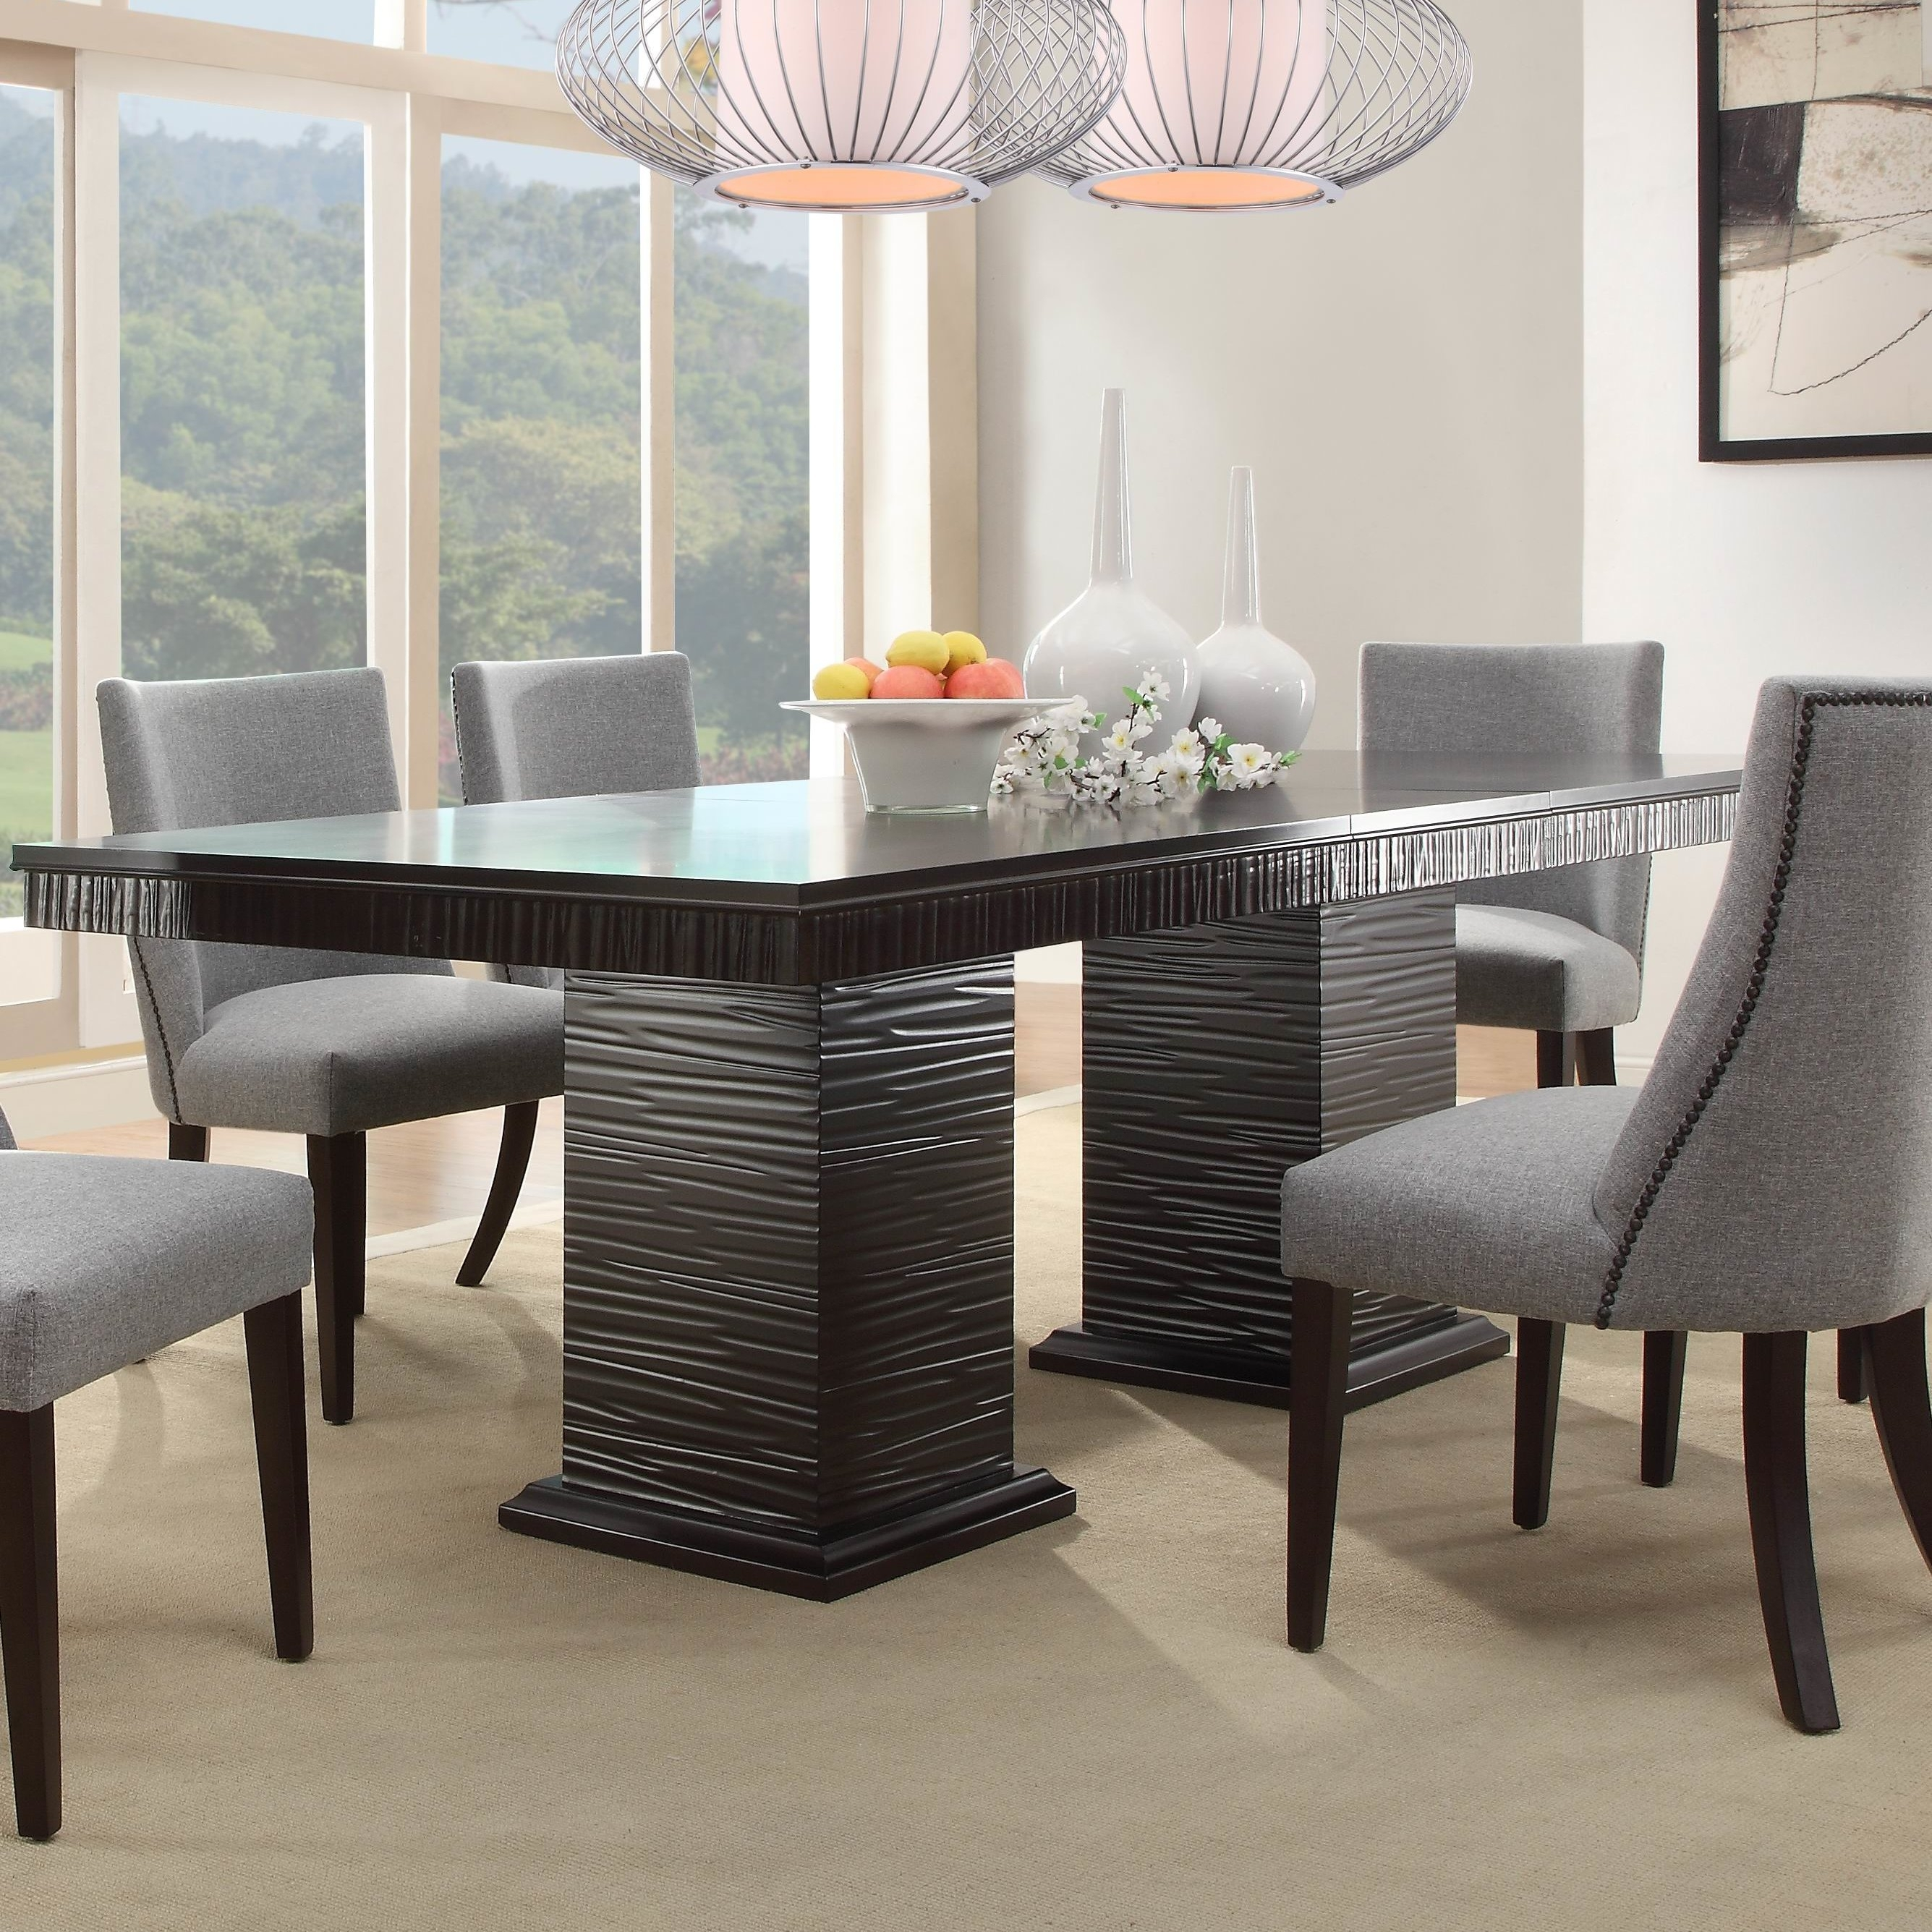 Willa Arlo Interiors Cadogan Extendable Dining Table & Reviews | Wayfair Inside Most Popular Candice Ii 7 Piece Extension Rectangular Dining Sets With Uph Side Chairs (Image 19 of 20)